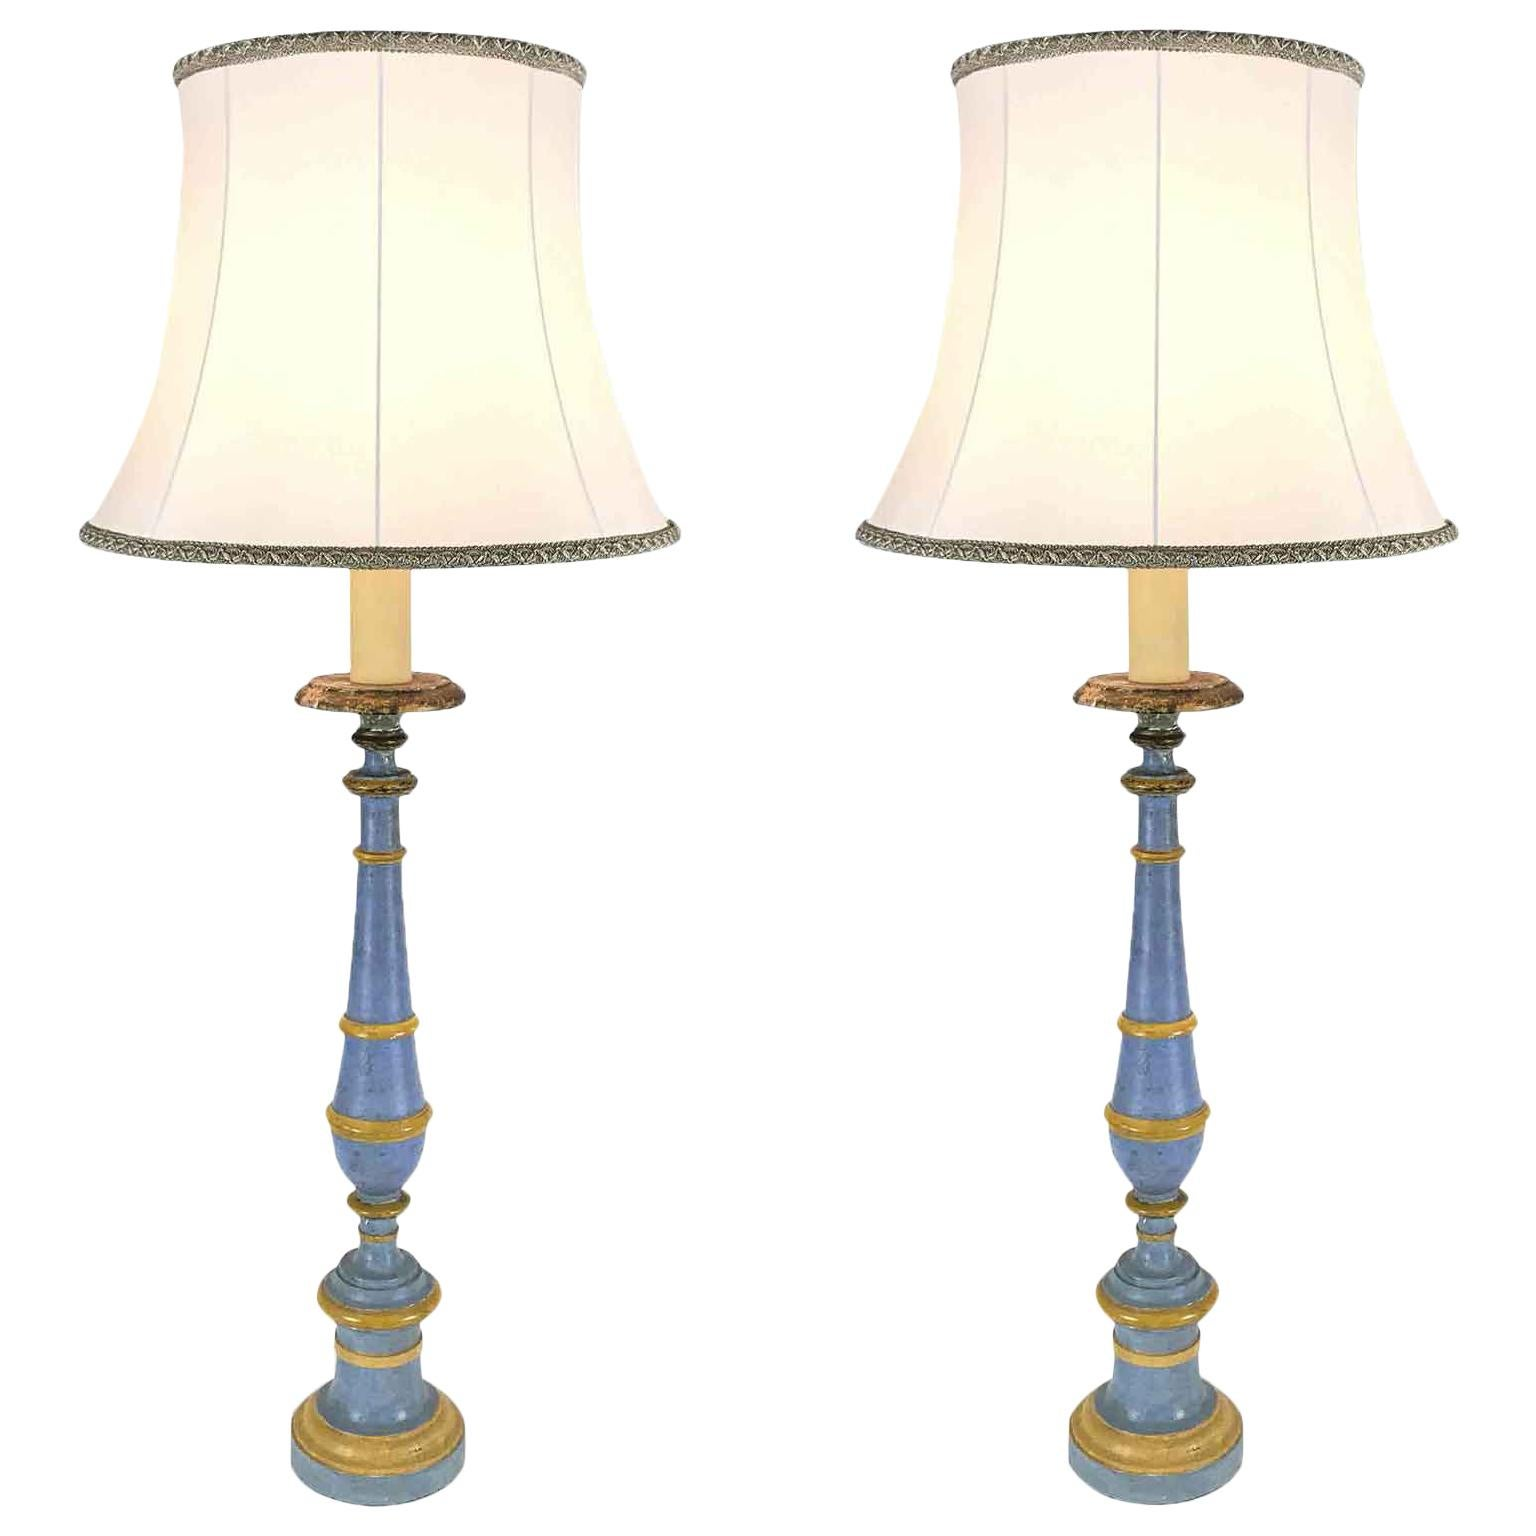 Pair of Italian Neoclassical Prickets Large Blue Candlesticks wired for Lamps